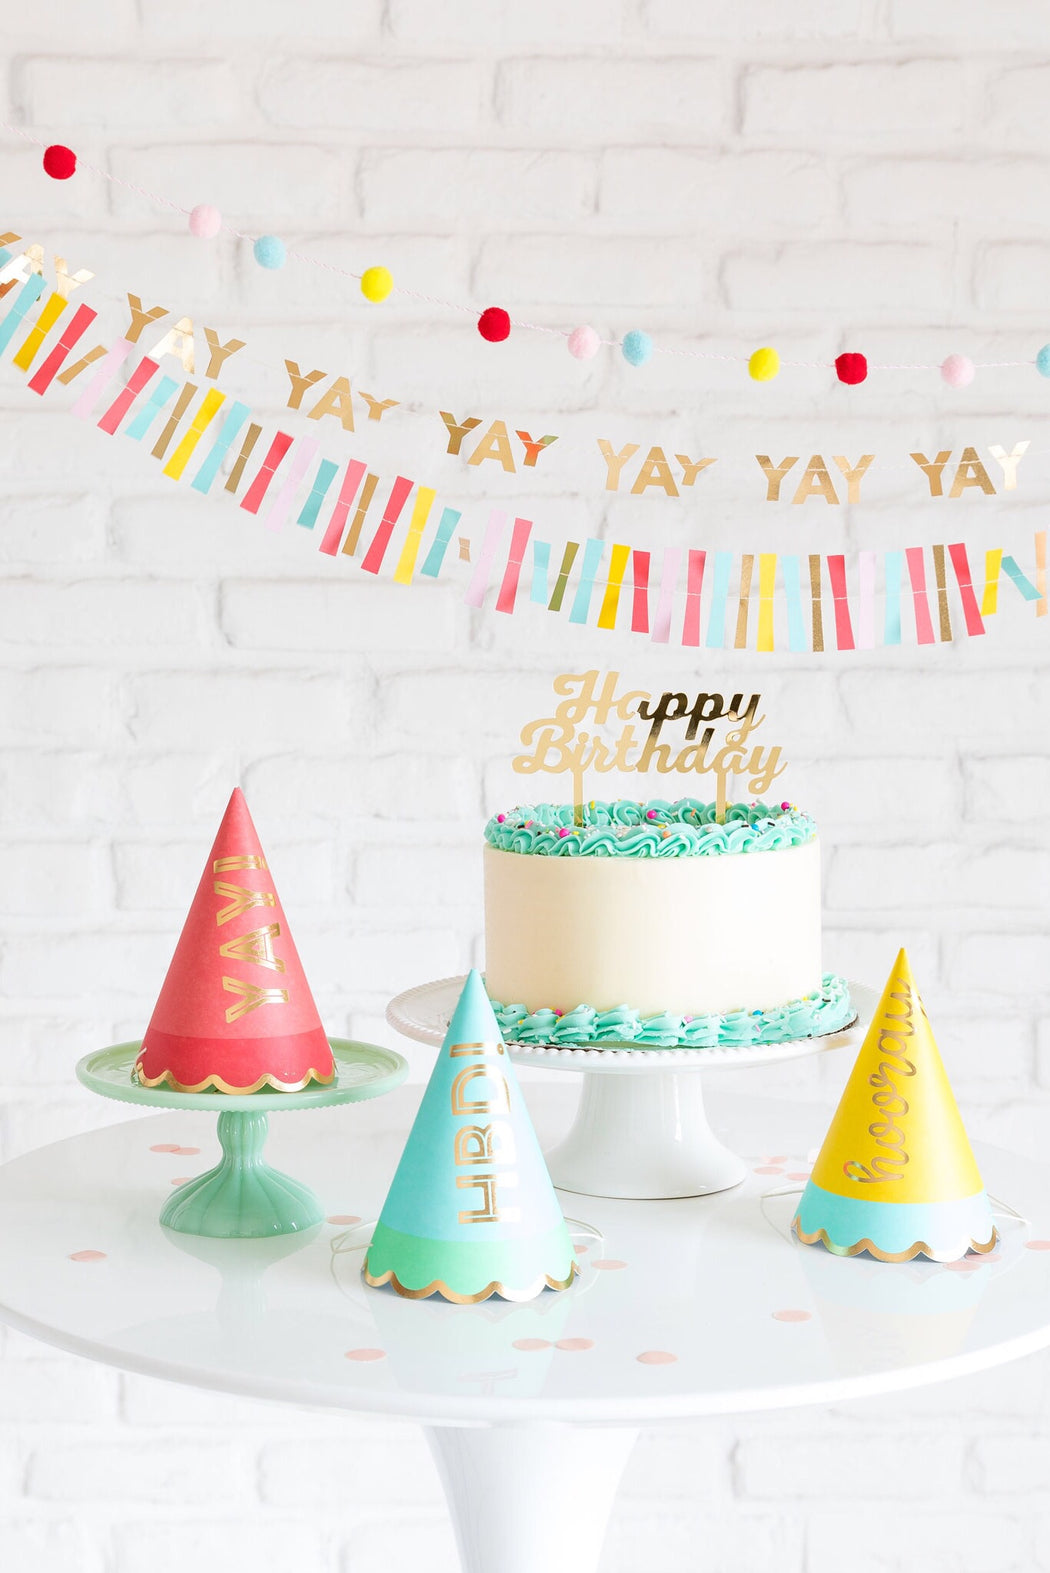 Hip Hip Hooray Party Hats, Partyware, My Mind's Eye - 3LittlePicks